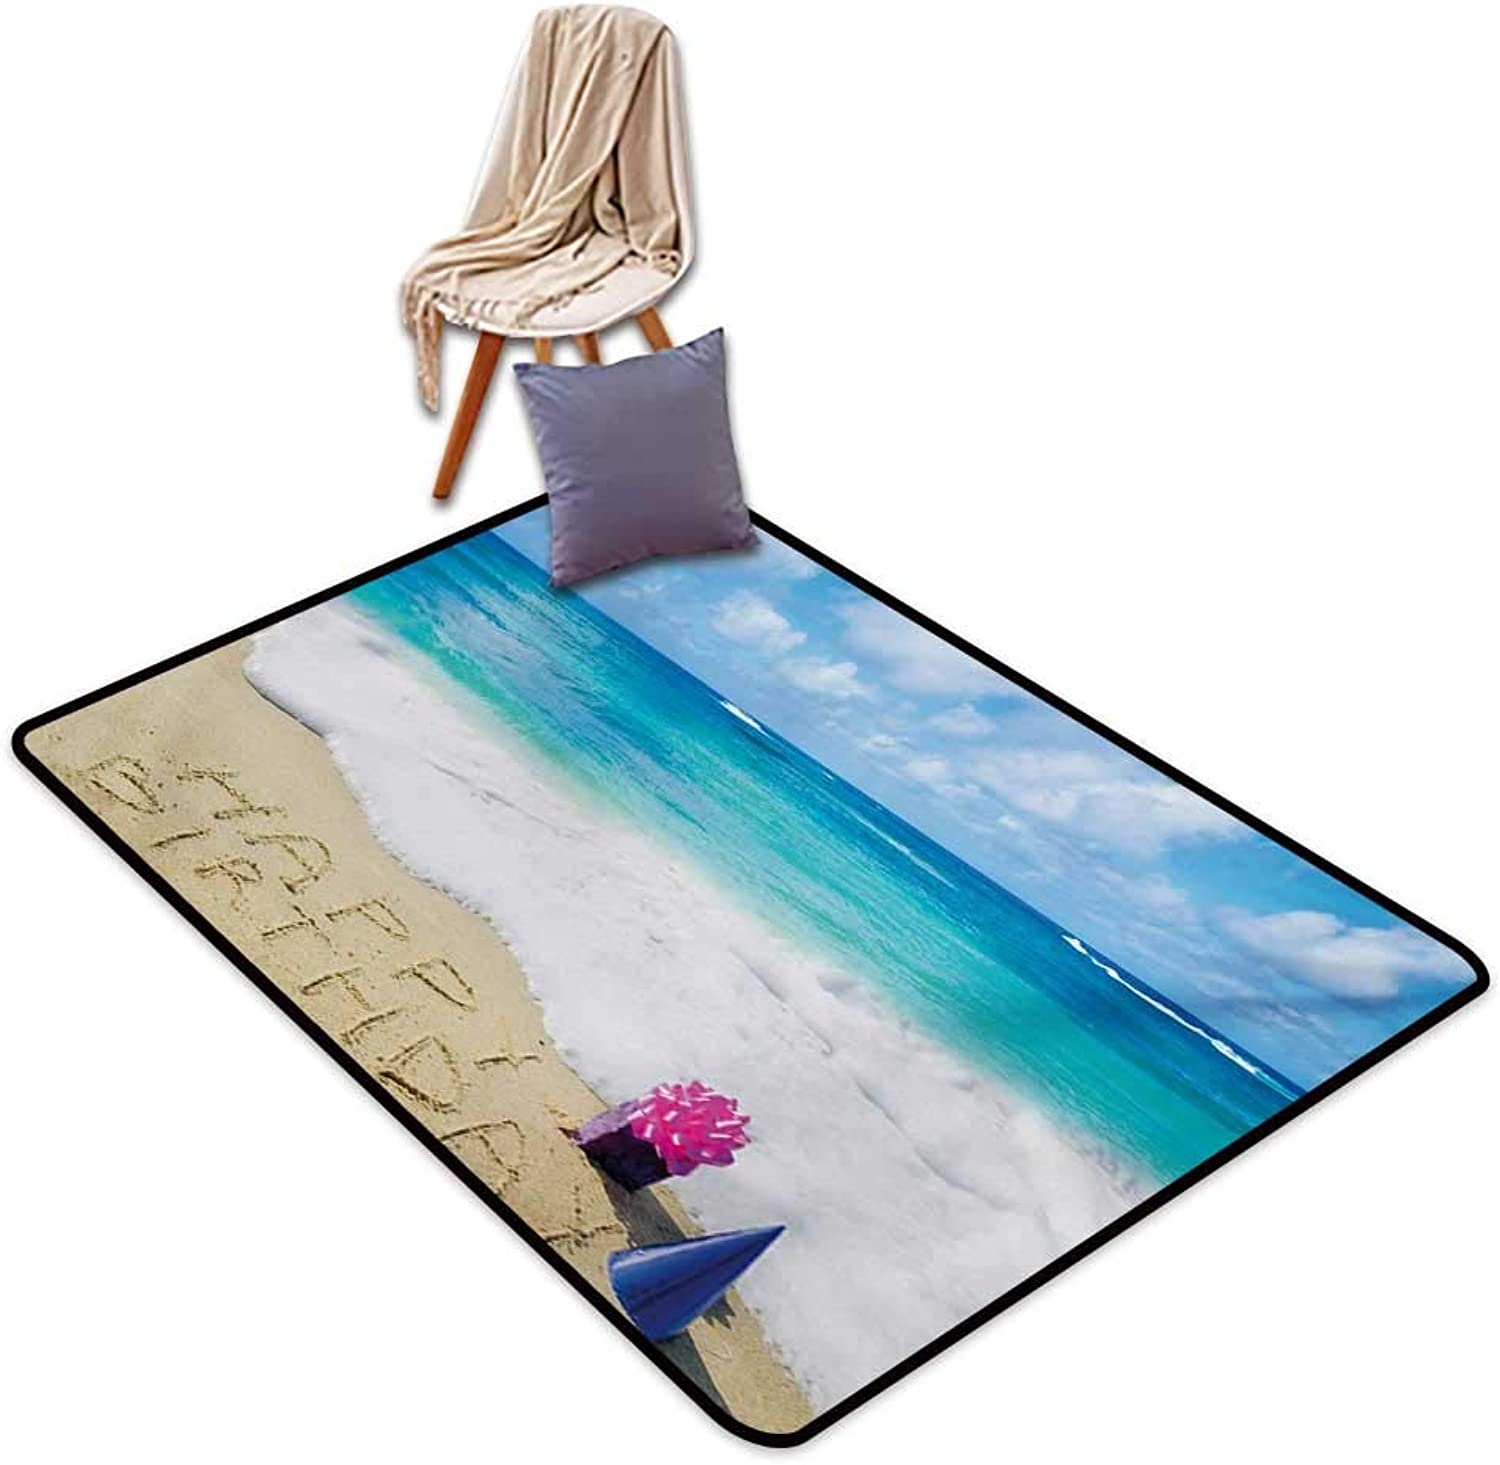 Birthday Large Outdoor Indoor Rubber Doormat Happy Birthday Celebration on Sandy Beach with Party Hat Presents Ocean Water Absorption, Anti-Skid and Oil Proof 32  Wx48 L bluee Pale Brown Pink